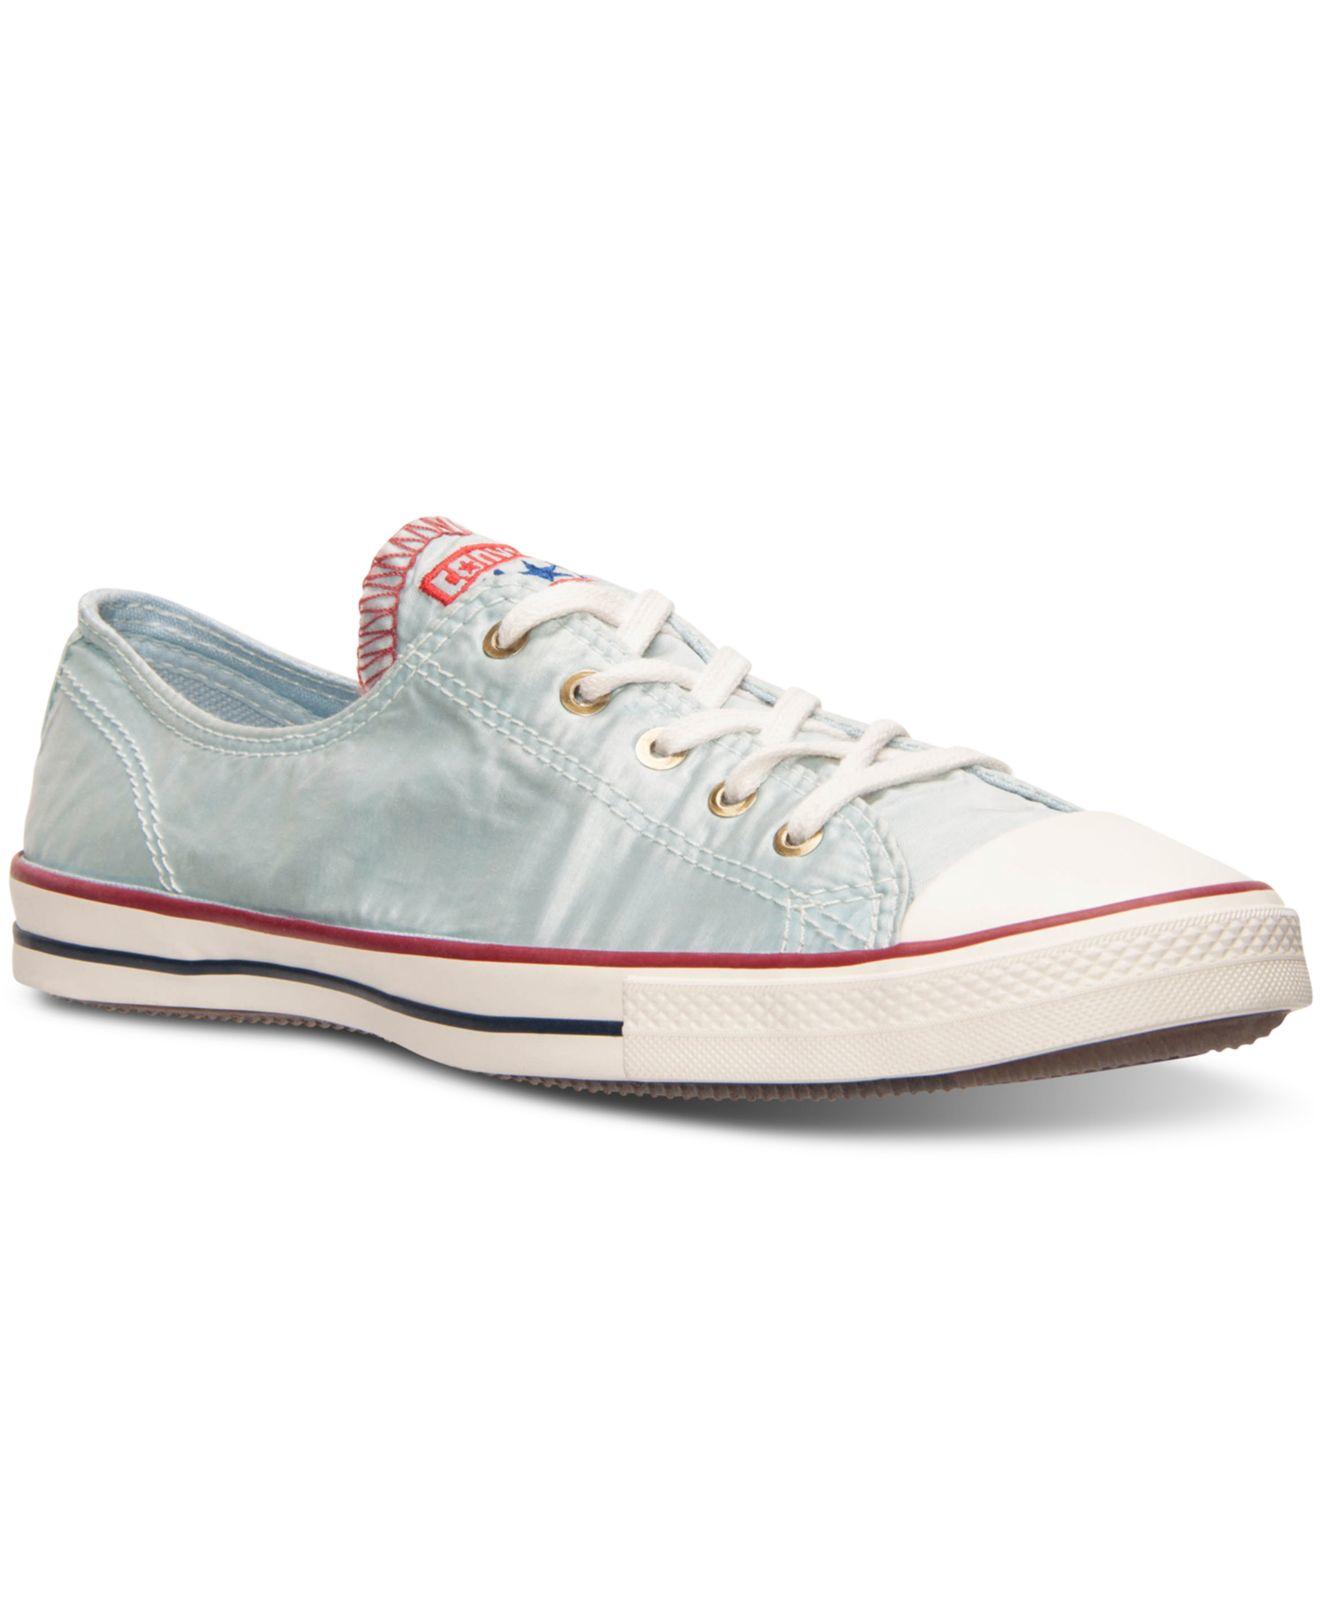 2acd60ca871f Lyst - Converse Women s Chuck Taylor All Star Fancy Supernova Casual ...